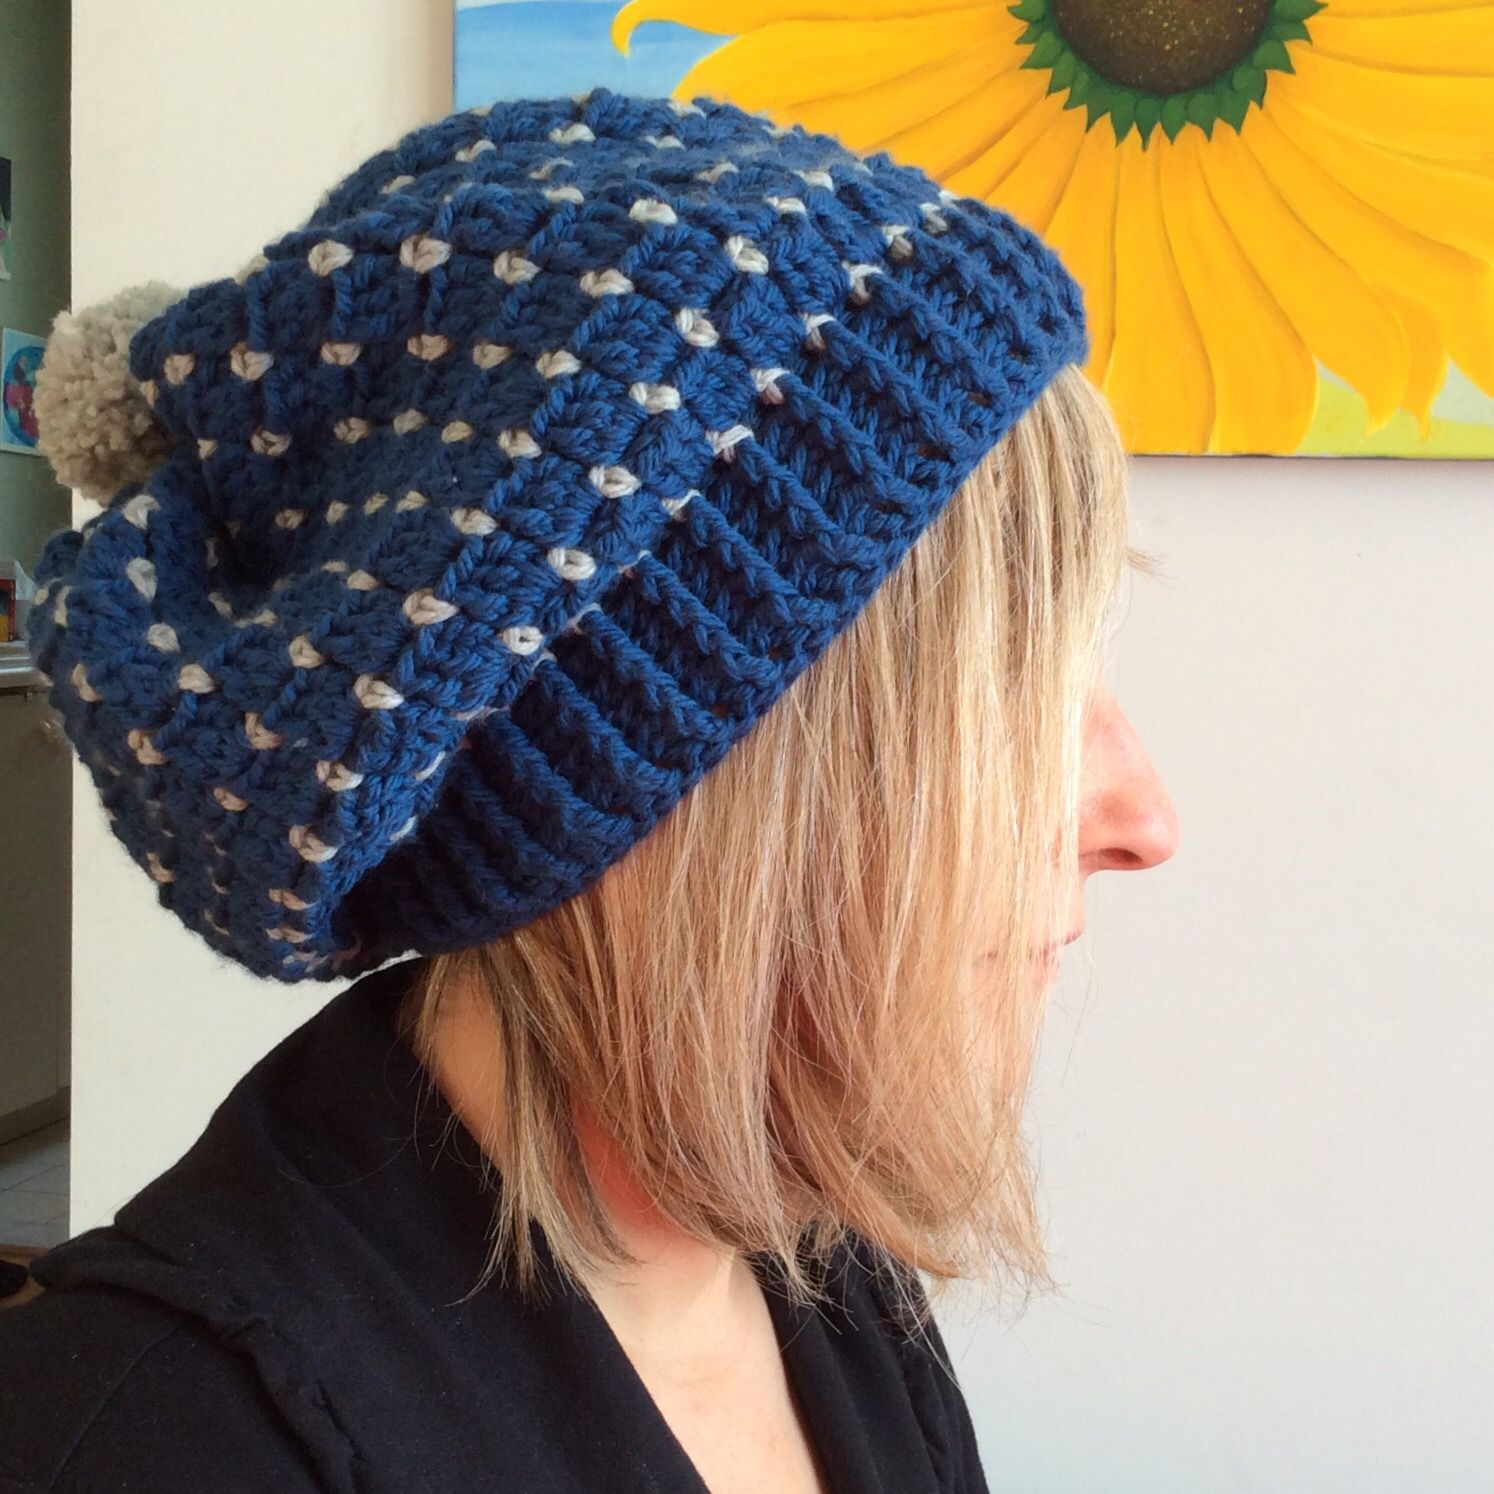 a7f7780f3b7 Kat Goldin Slouchy Bobble Hat pattern. From her book